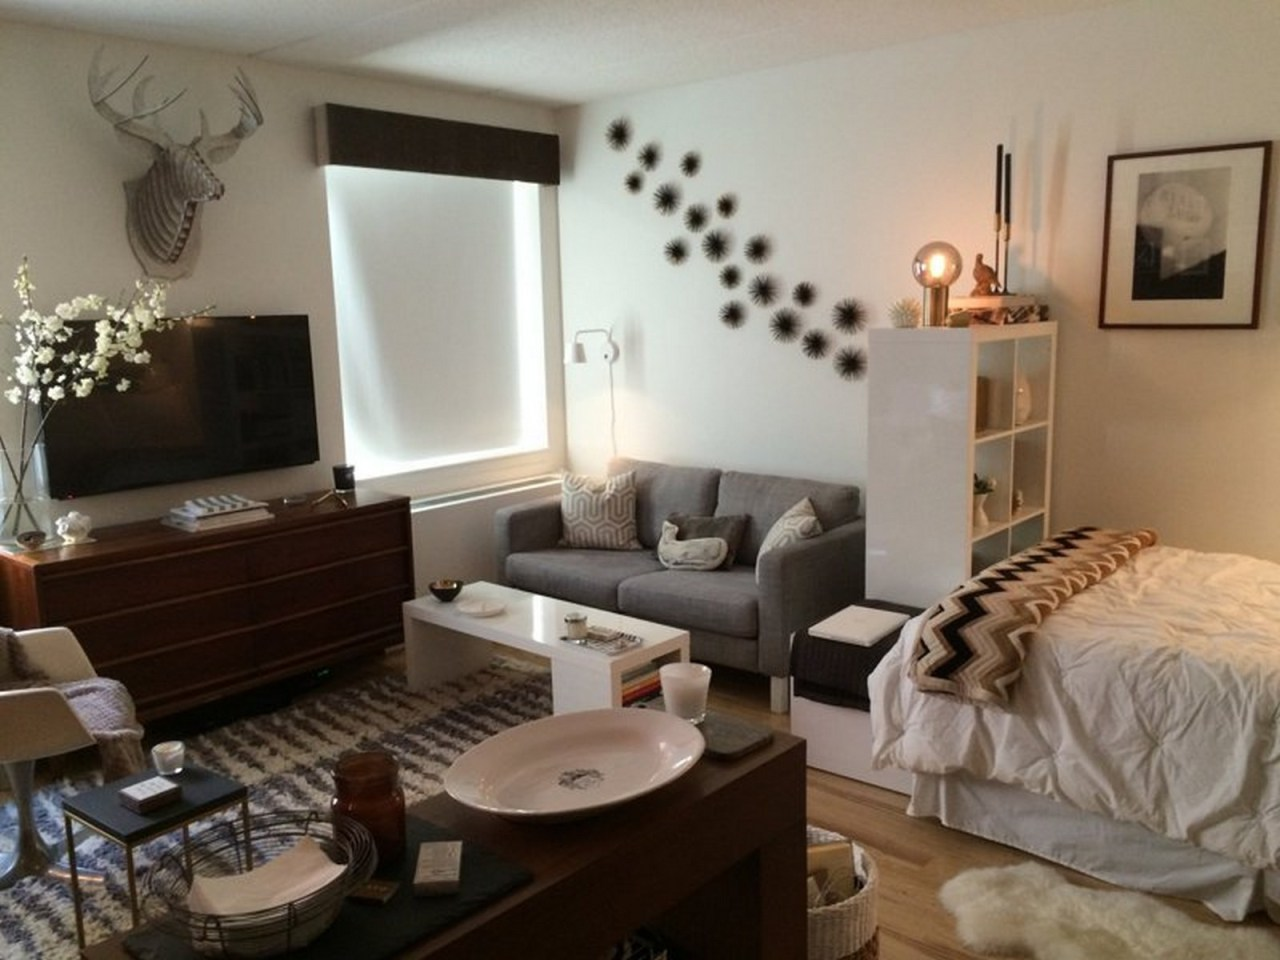 20 perfect small apartment decorating on a budget decor units. Black Bedroom Furniture Sets. Home Design Ideas